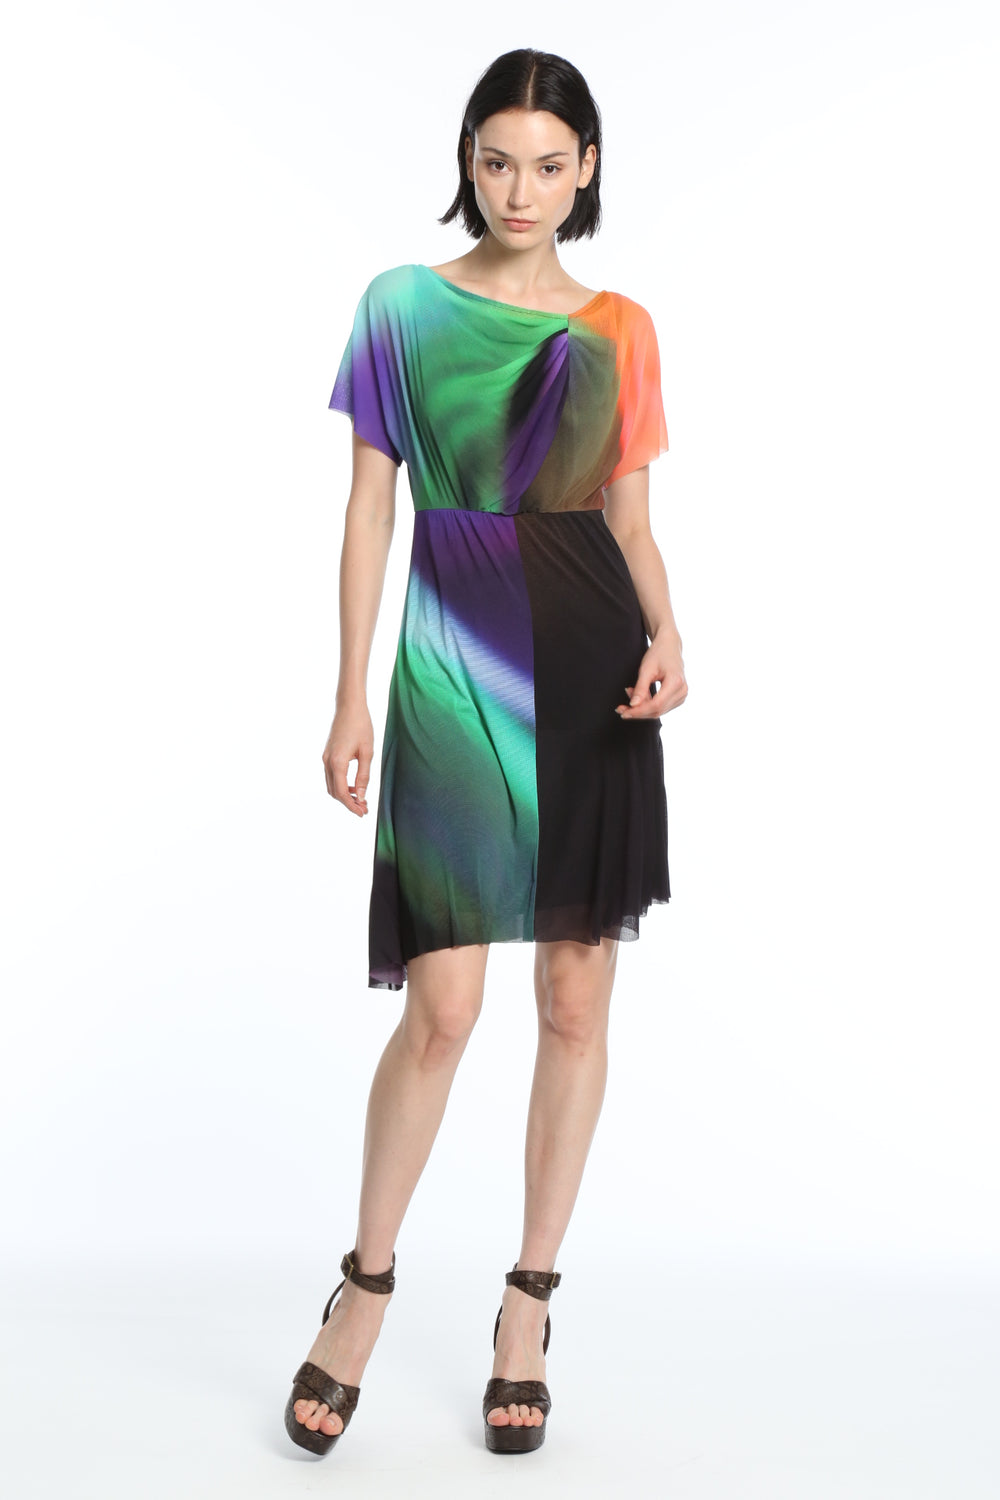 vivienne-tam-rainbow-light-dress